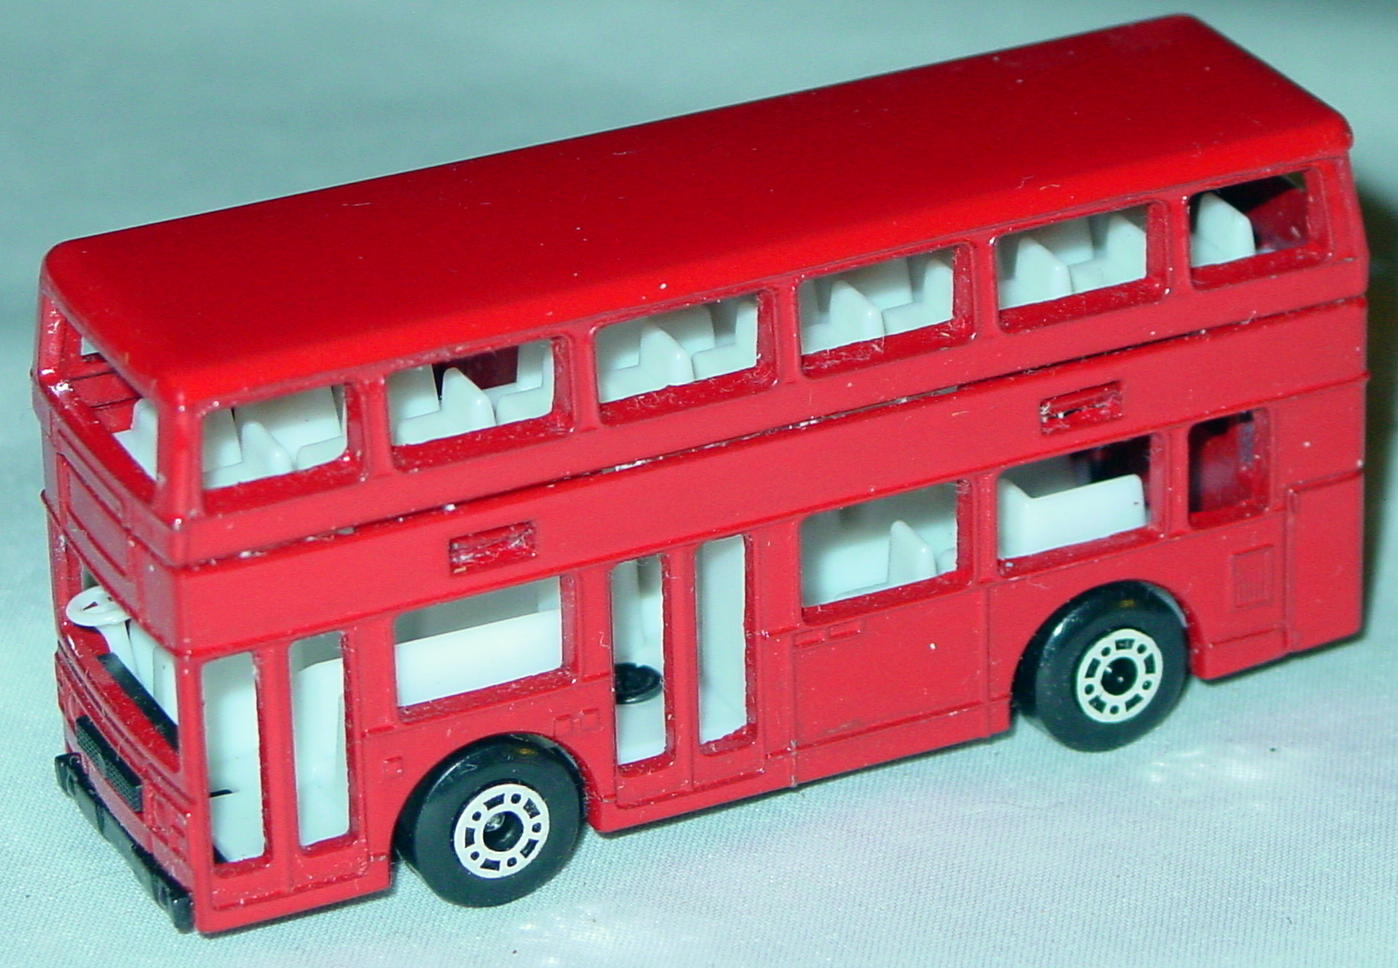 ASAP-CCI 17 C 69 - Titan Bus Red no tampo ASAP blank two slight chips